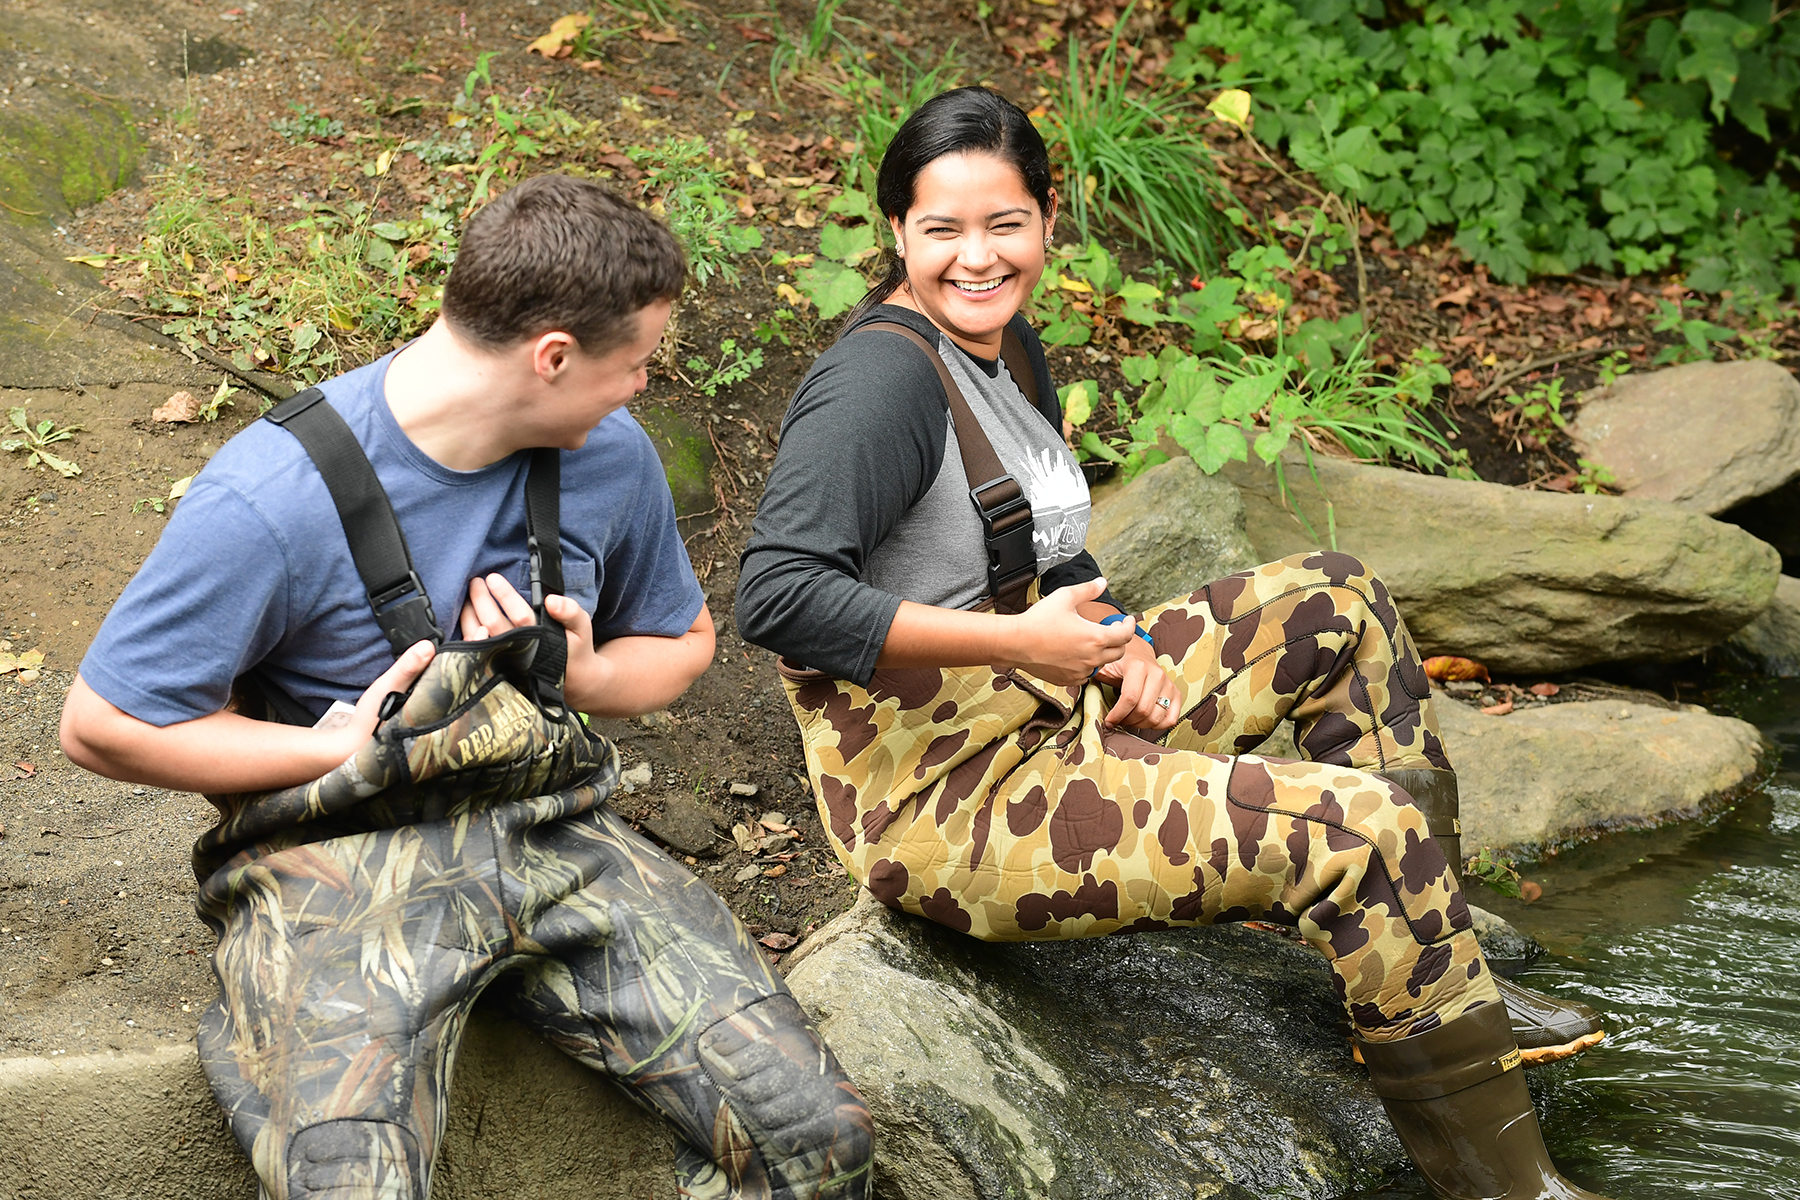 Stephanie Castro gets down and dirty at Van Cortlandt Park.